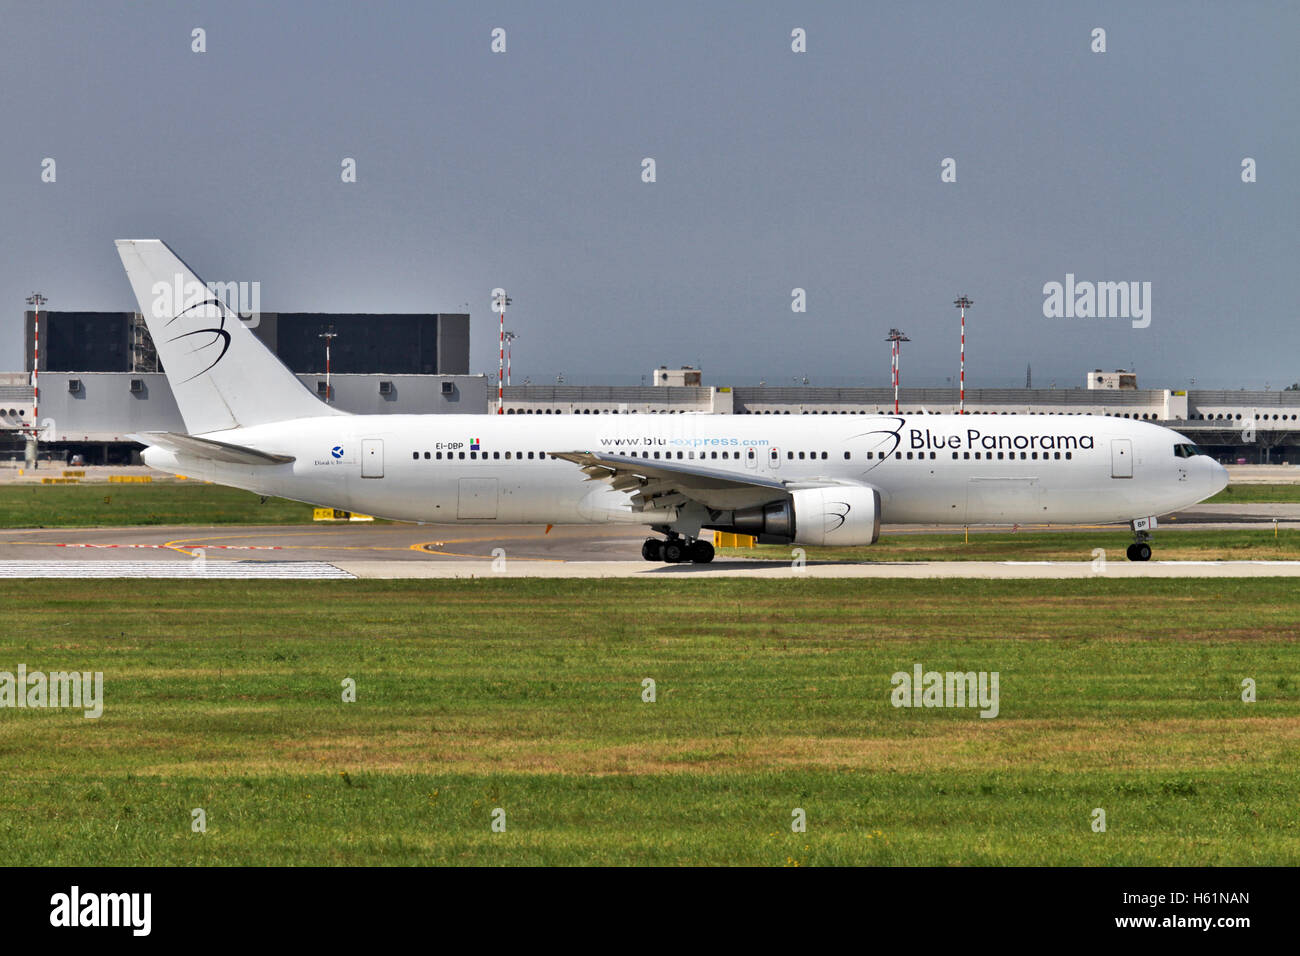 Blue Panorama Airlines Boeing 767-35H(ER). Photographed at Malpensa airport, Milan, Italy - Stock Image